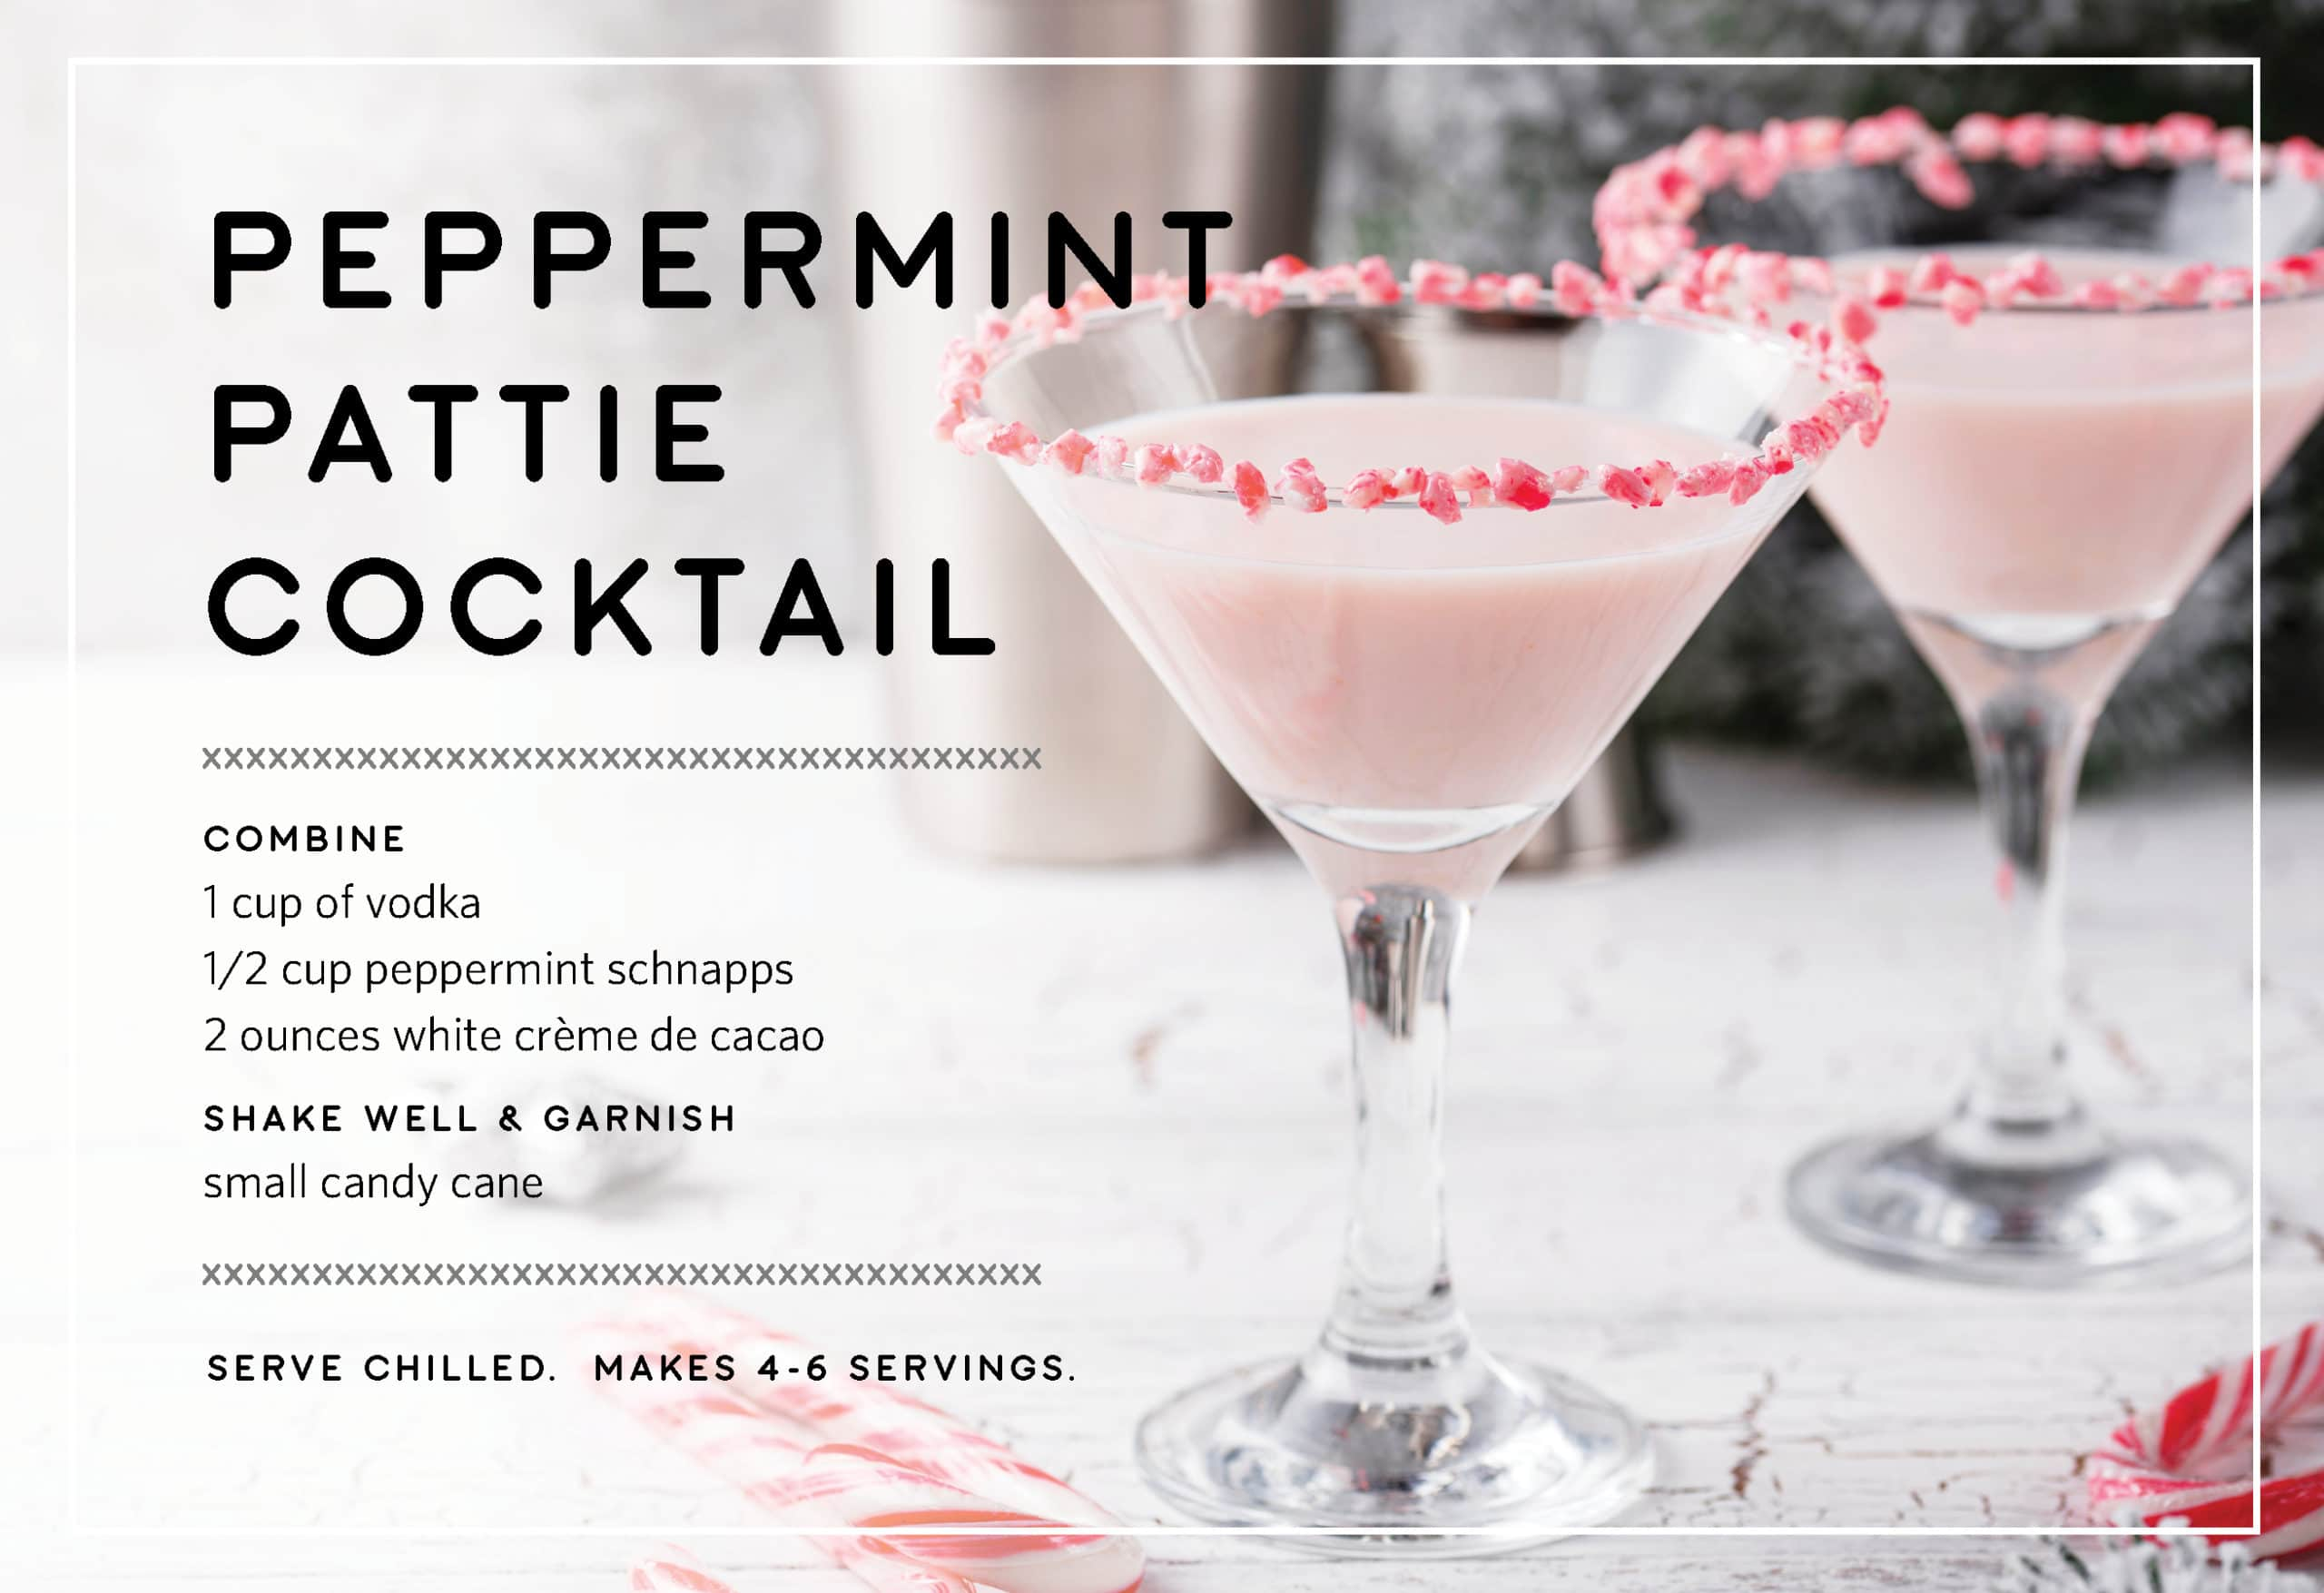 Peppermint Pattie Holiday Drink Recipes